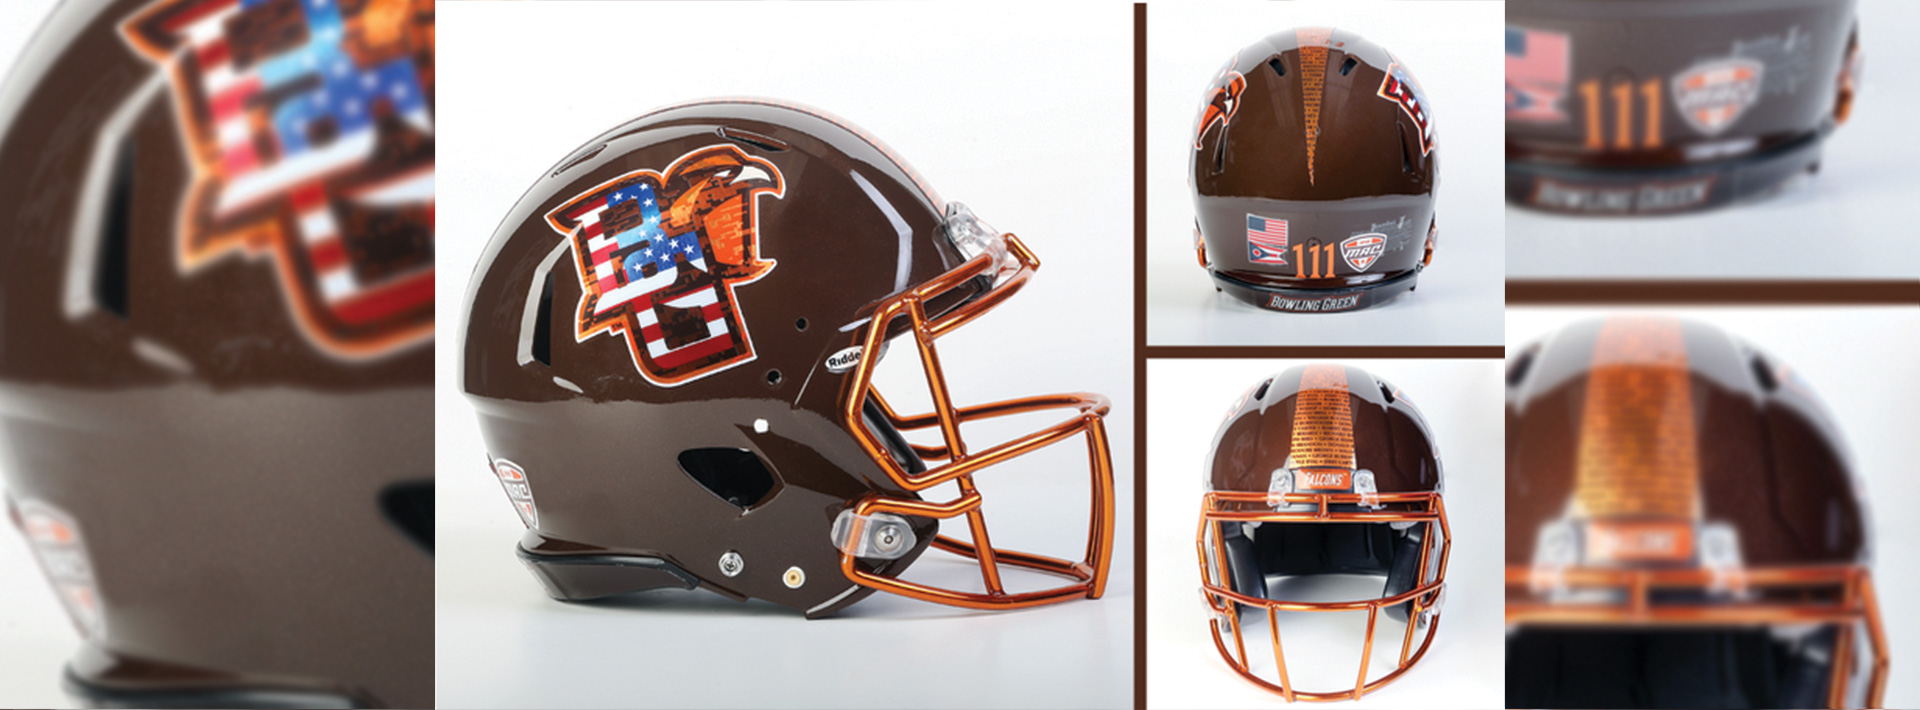 BGSU To Wear Commemorative Helmets For Military Appreciation Day